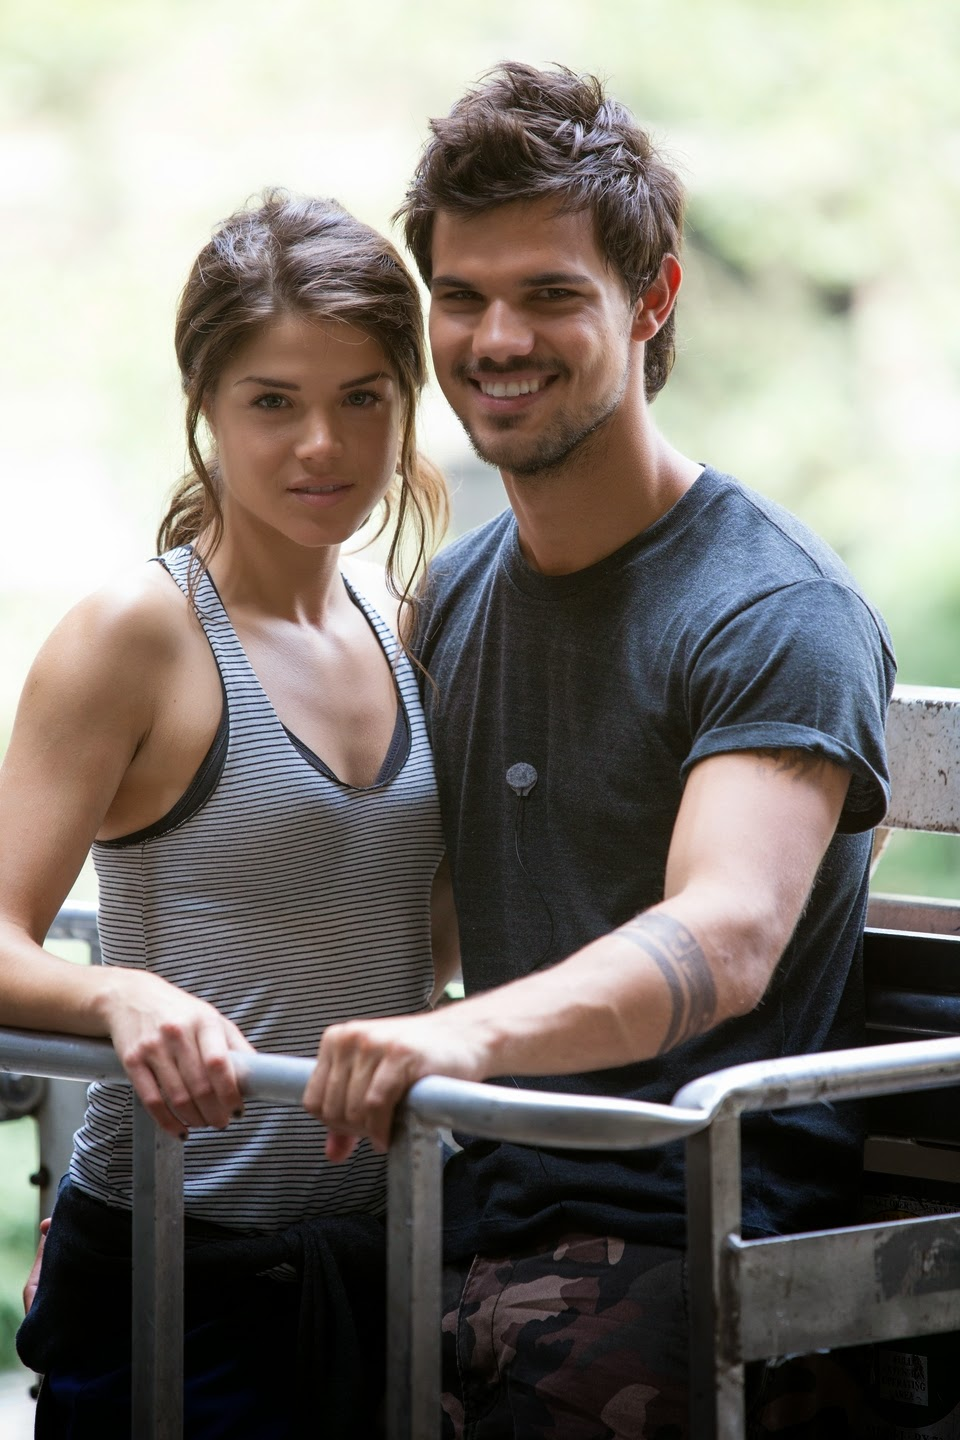 REEL DEAL: Taylor Lautner Faces Heart Stopping Challenges In